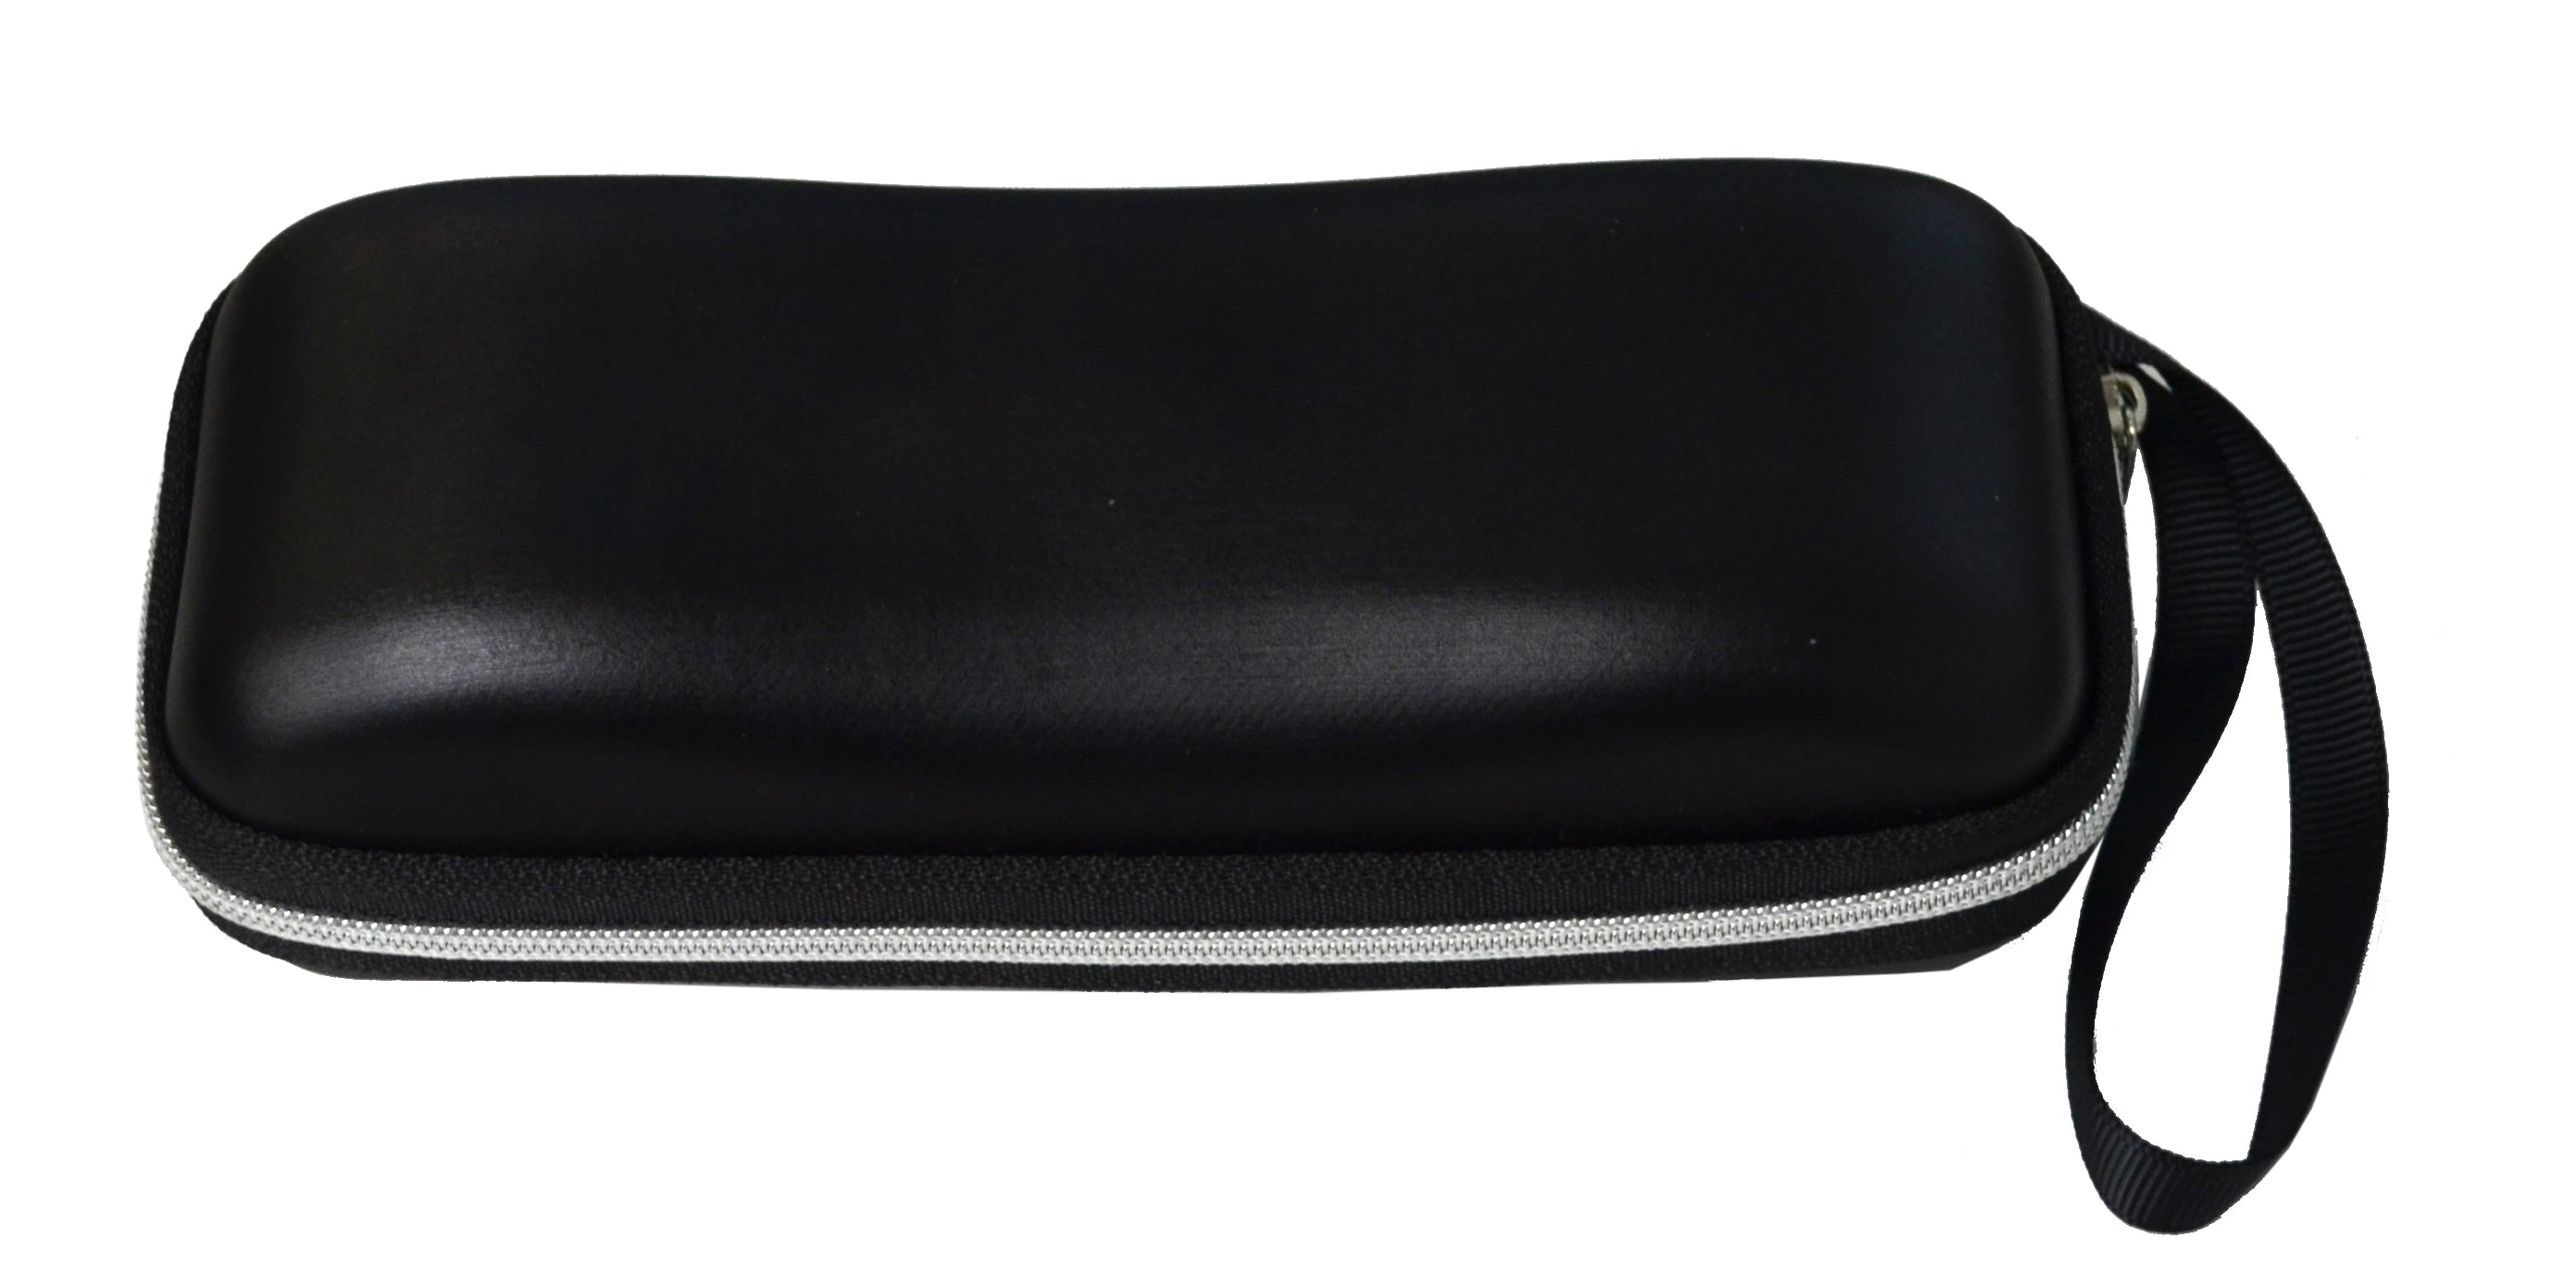 Dynasol Eyewear - Wholesale Sunglasses - Sunglasses Case 823 Black - Accessories